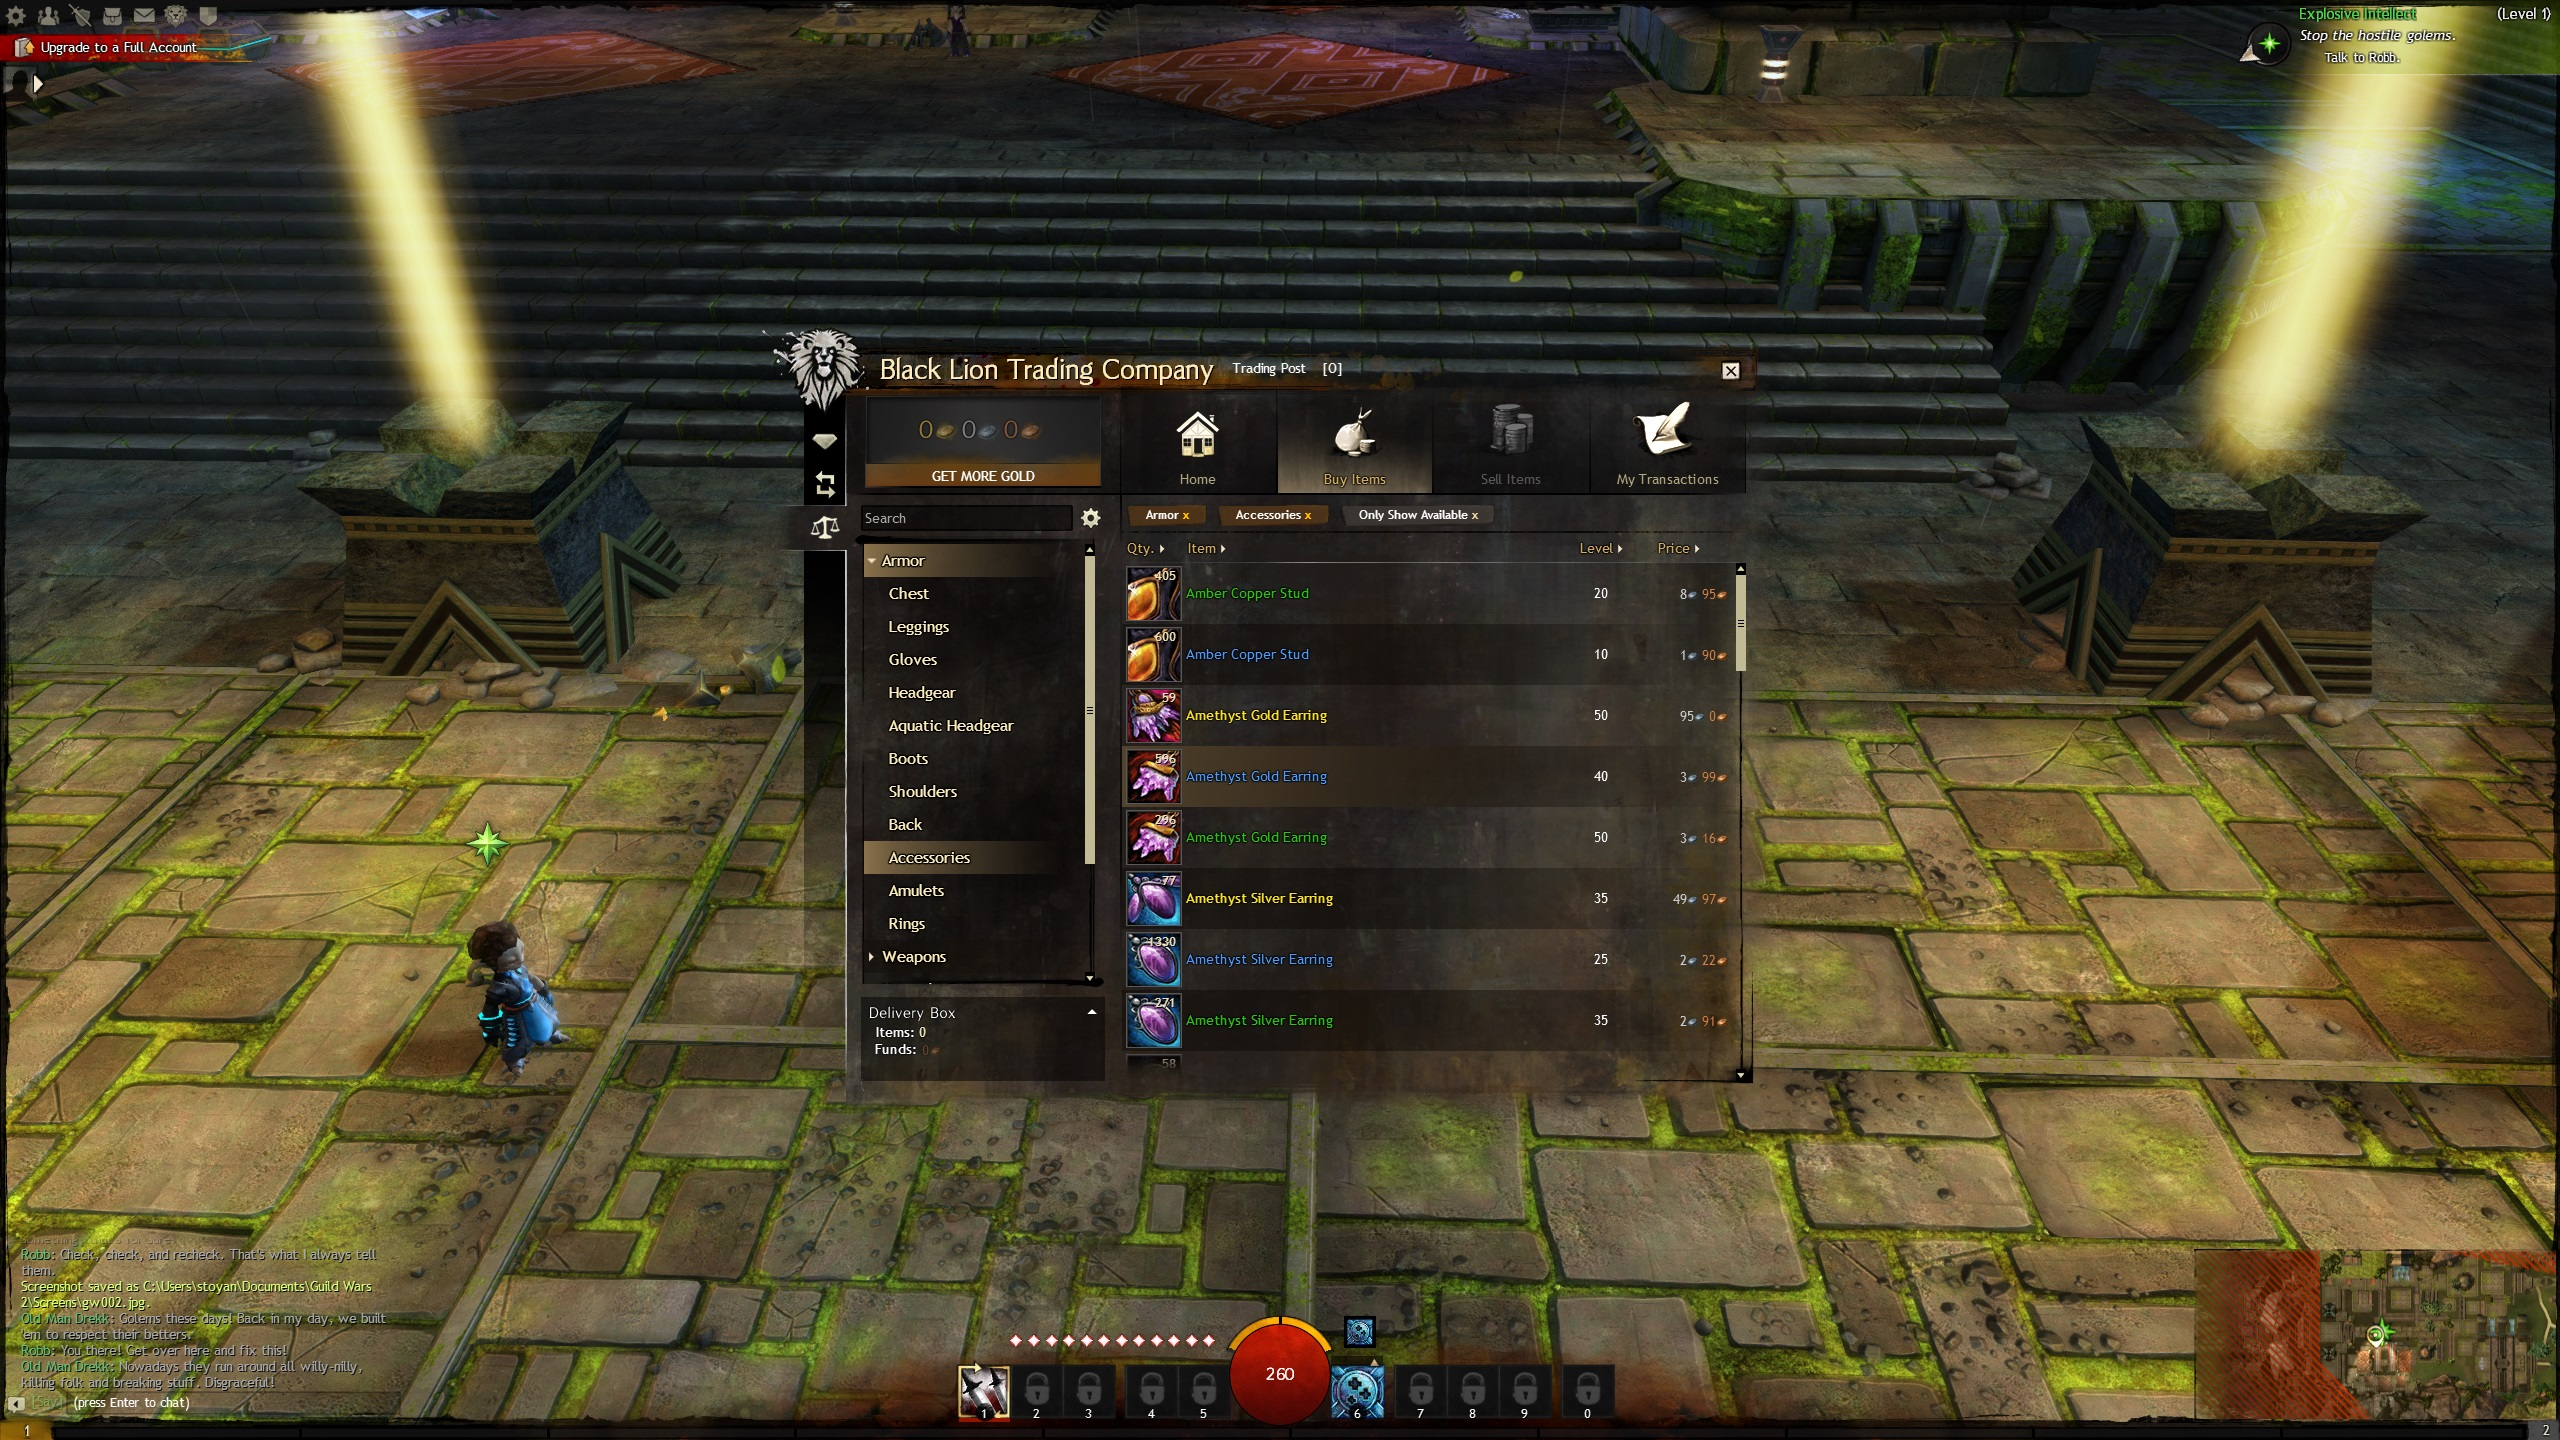 Guild Wars in-game shop developed with Coherent UI